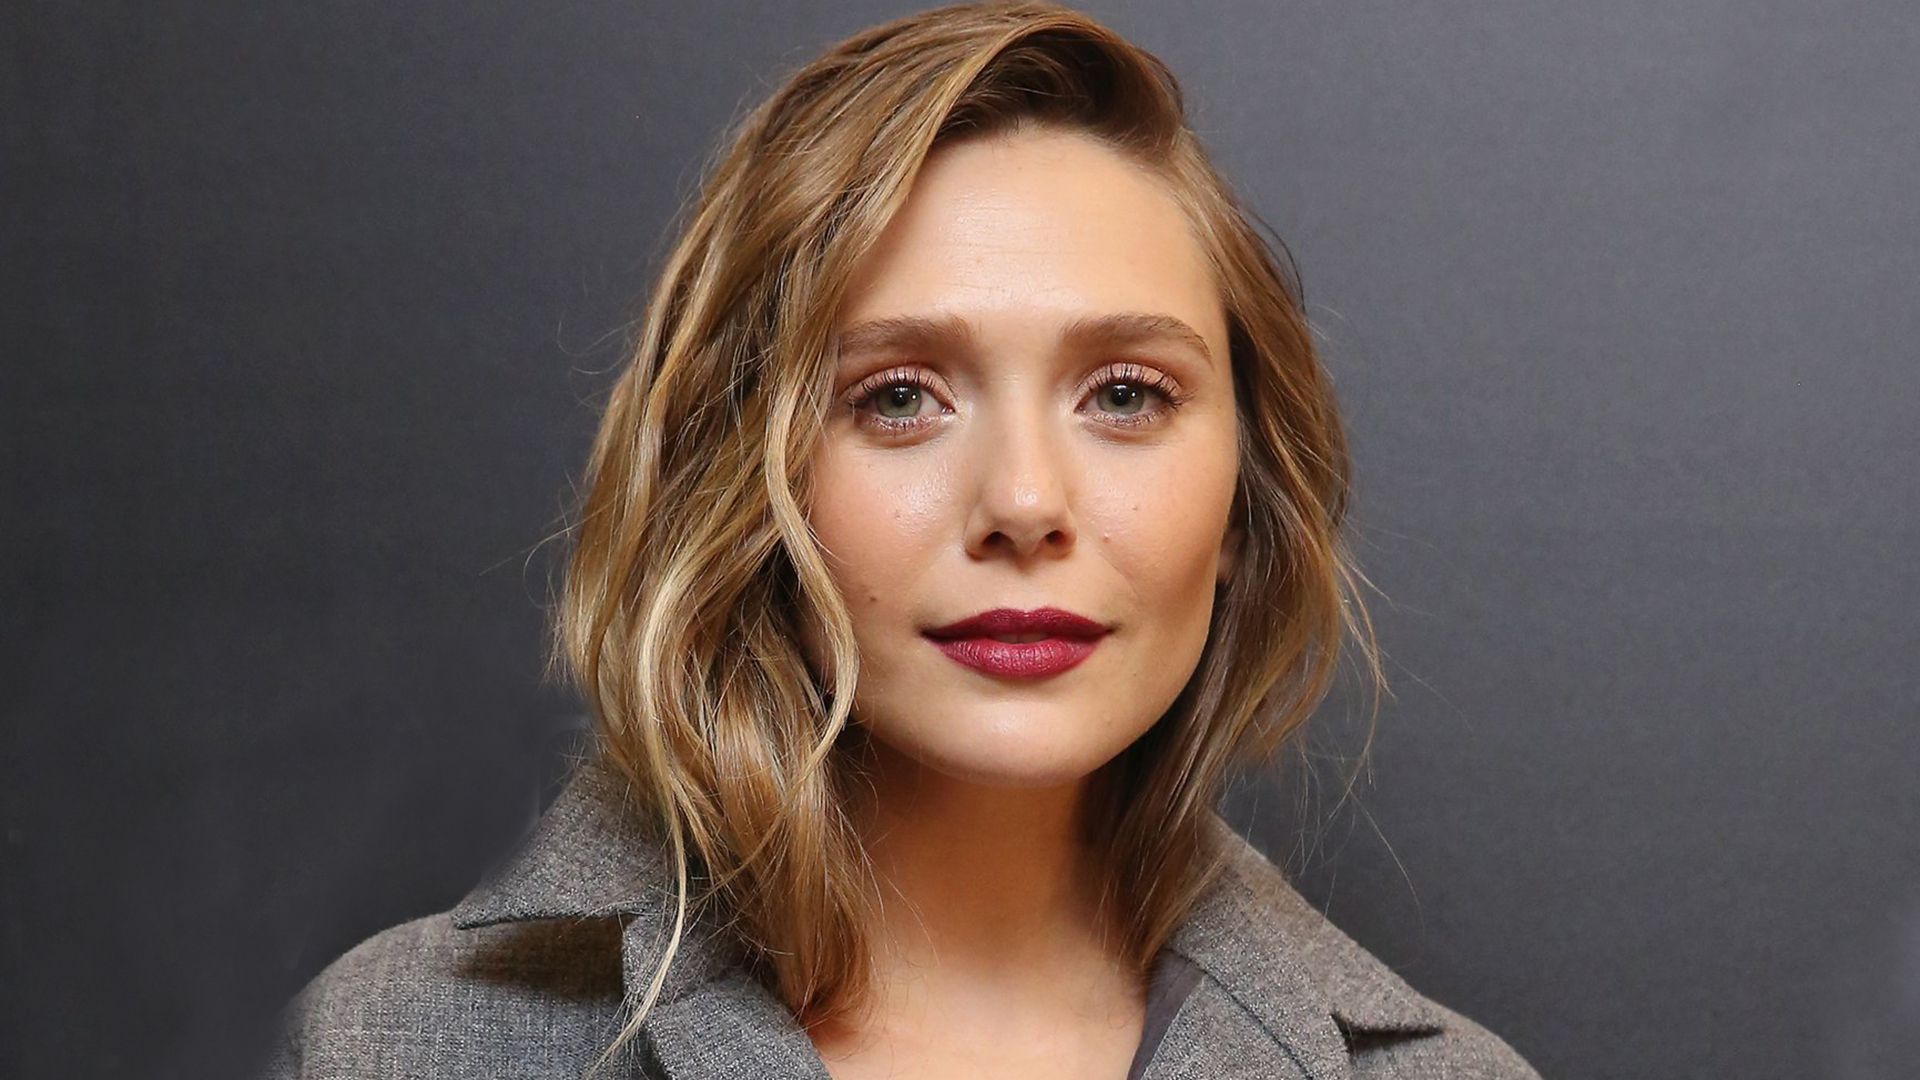 Elizabeth-Olsen-Height-Weight-Age-Bra-Size-Affairs-Body-Stats